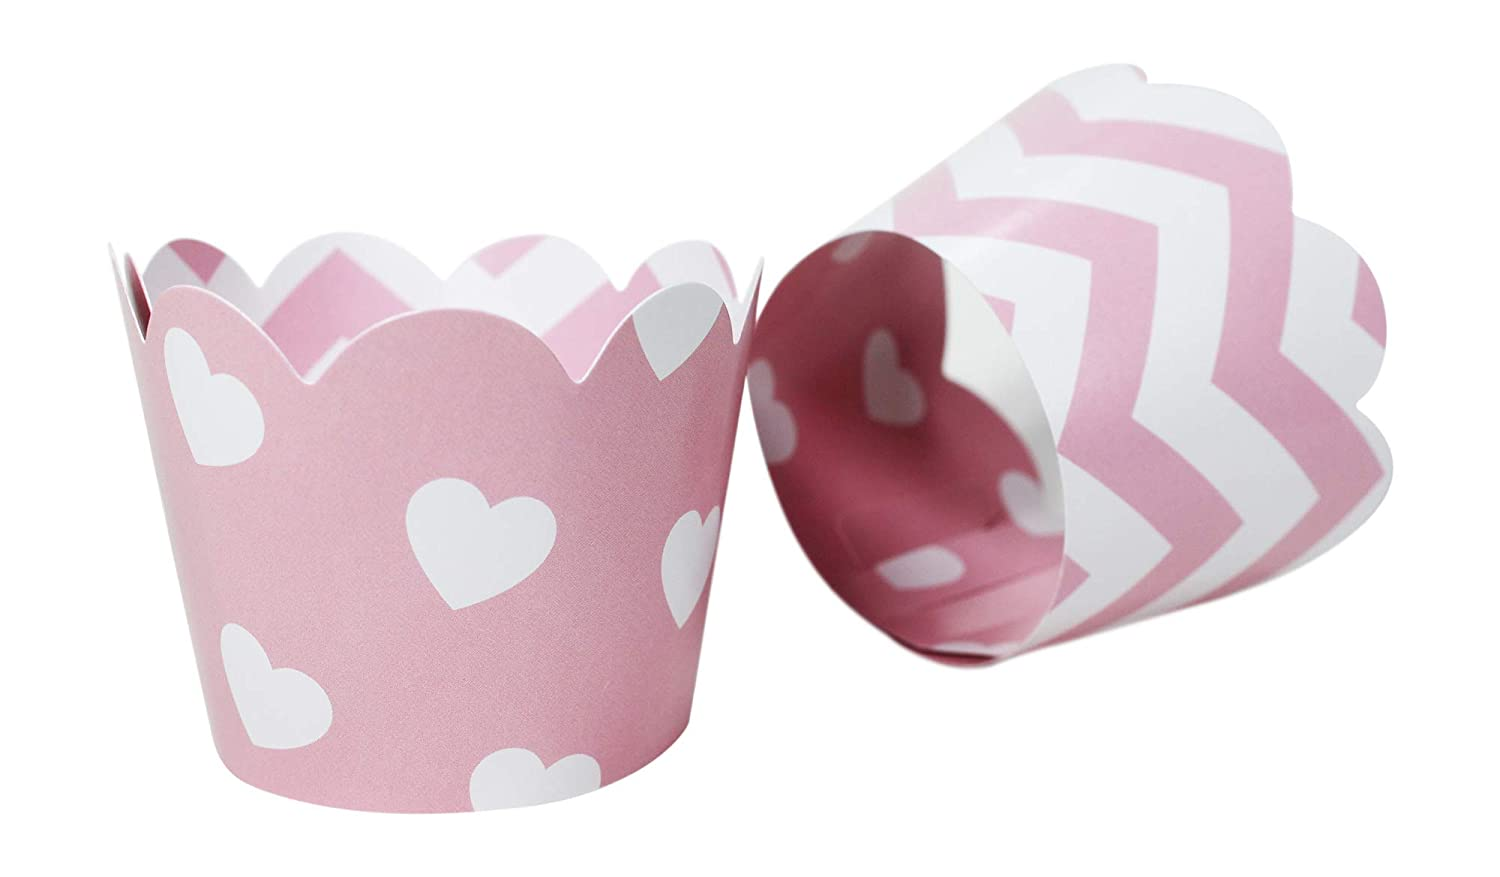 Bachelorette Weddings Pink Hearts//Chevron Cupcake Wrappers for Valentines,Baby or Bridal Showers Pink White Princess or Girl Birthday Party Adjustable Cup Cake Holder Wraps Set of 24 Reversible